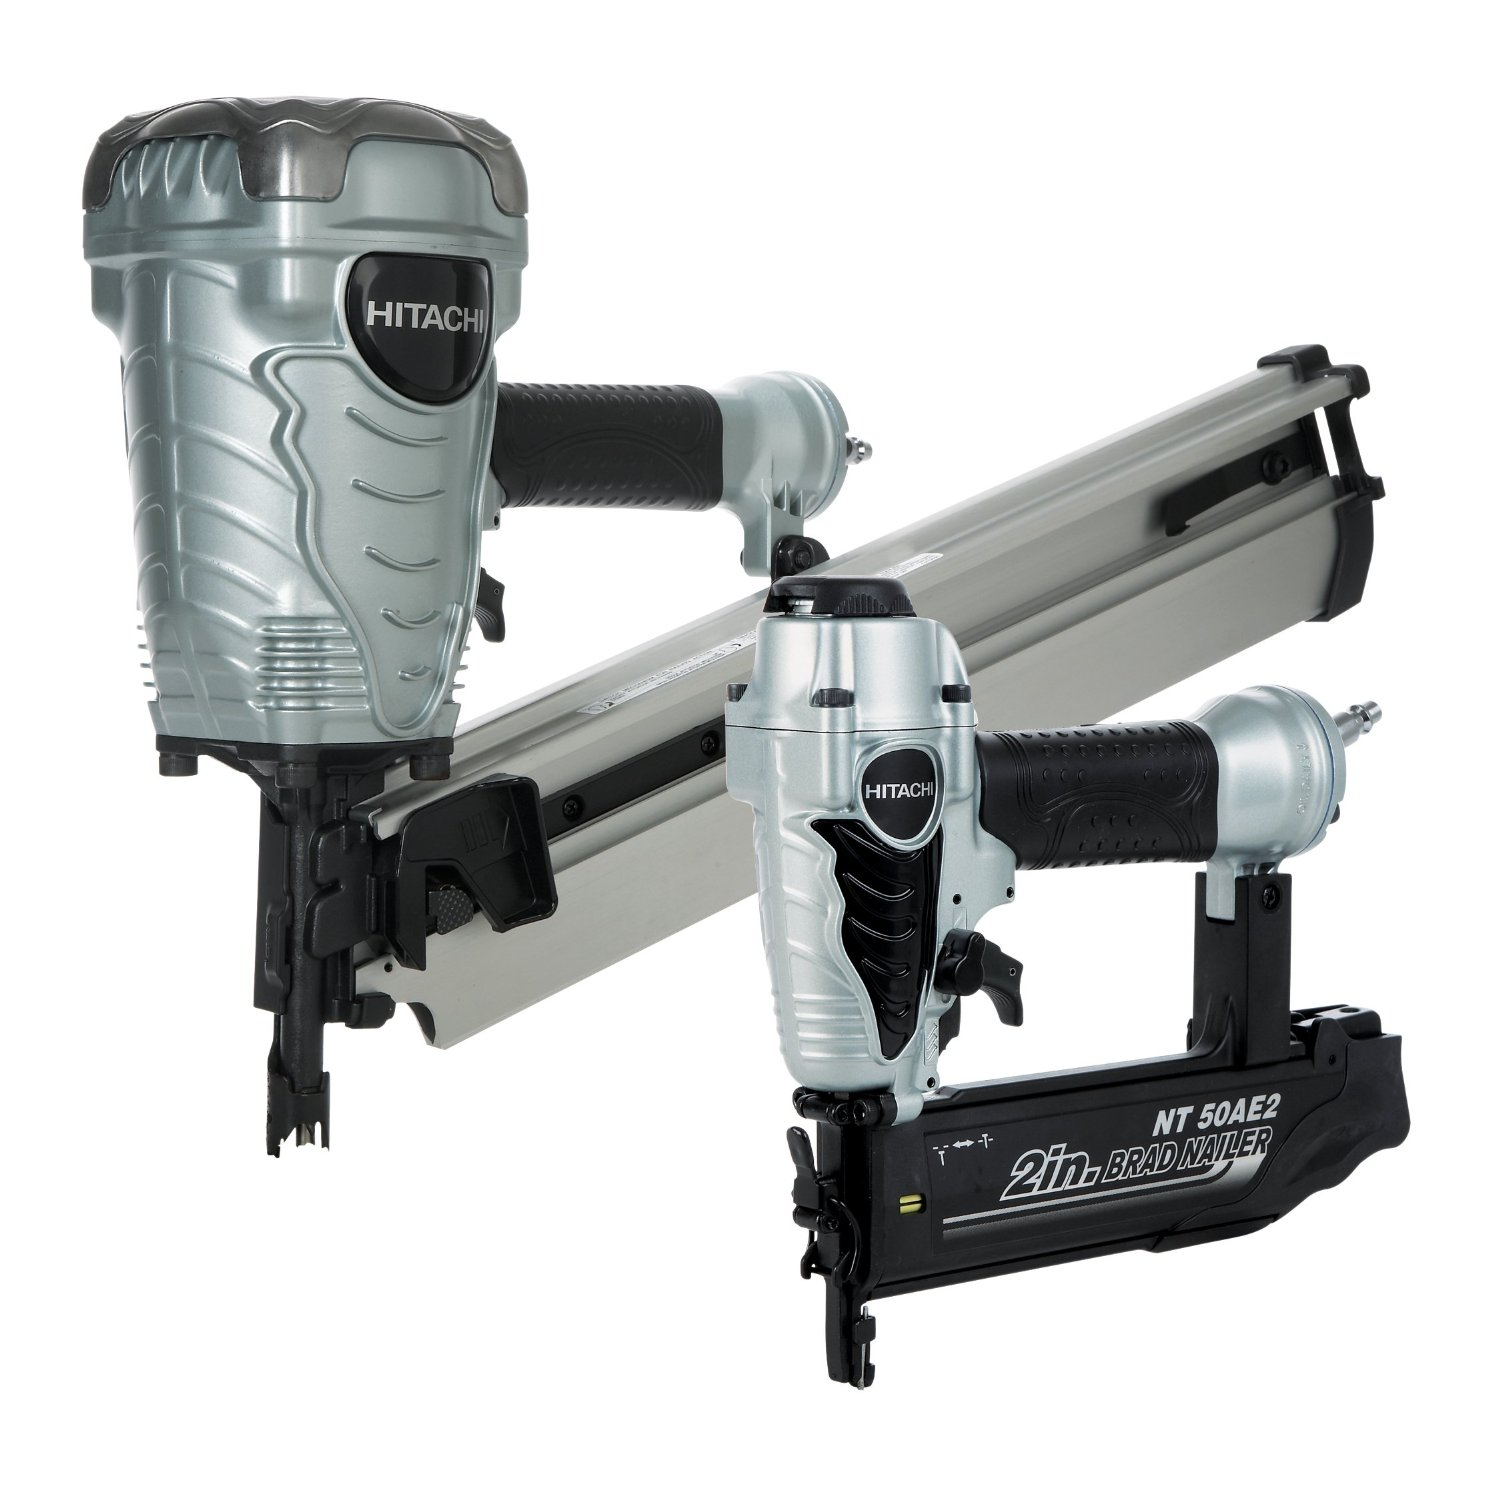 Hitachi KNR9050A framing/brad nailer combo kit